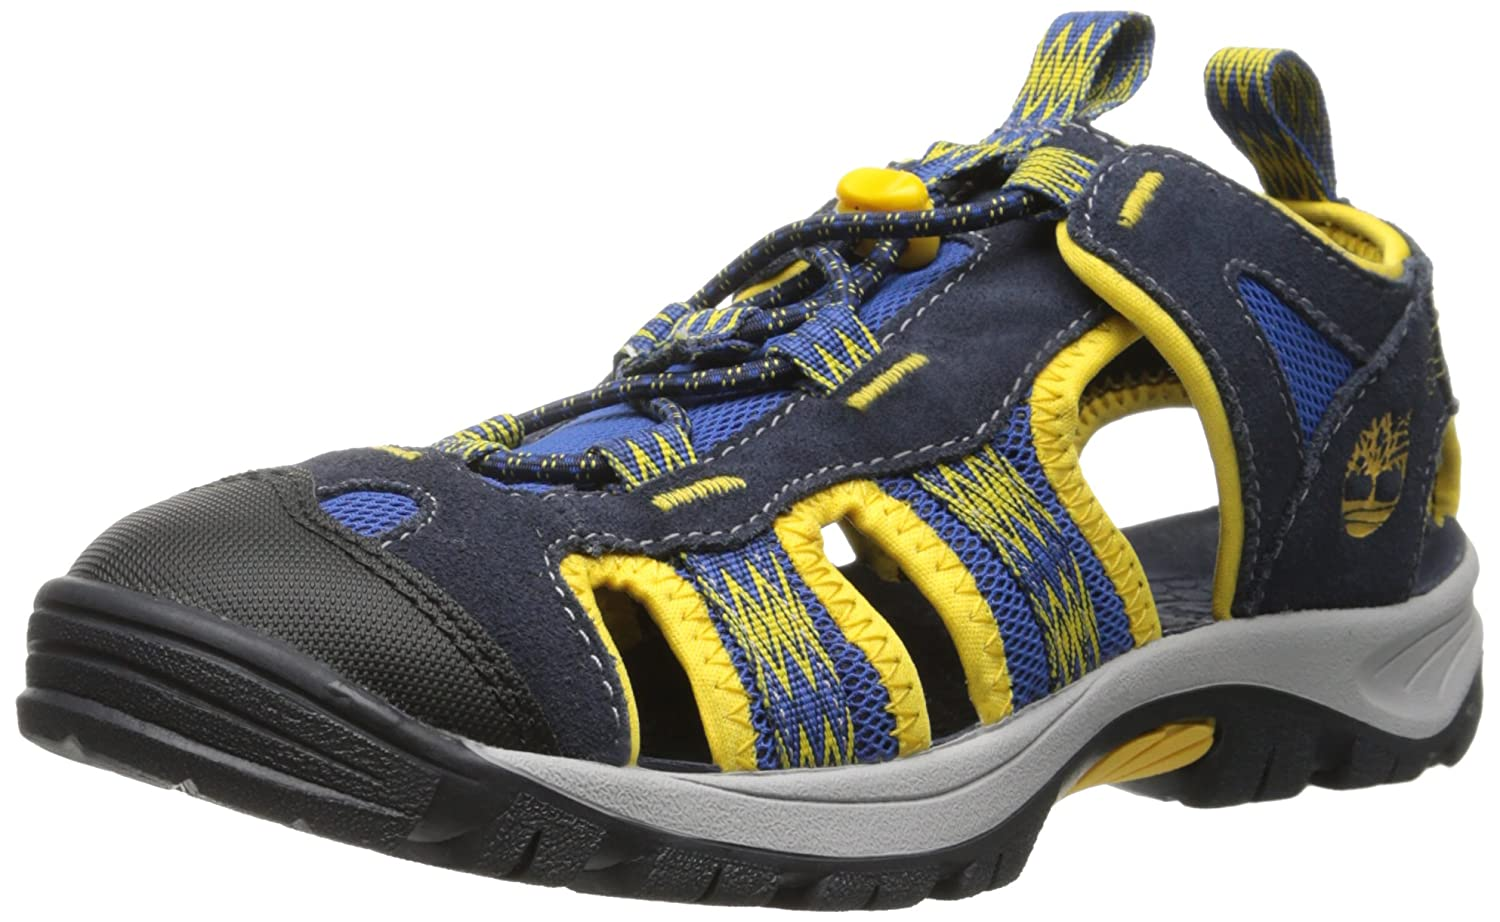 Timberland Belknap Sandal FTK_Belknap Fisherman, Unisex Kids Open Toe  Sandals: Amazon.co.uk: Shoes & Bags